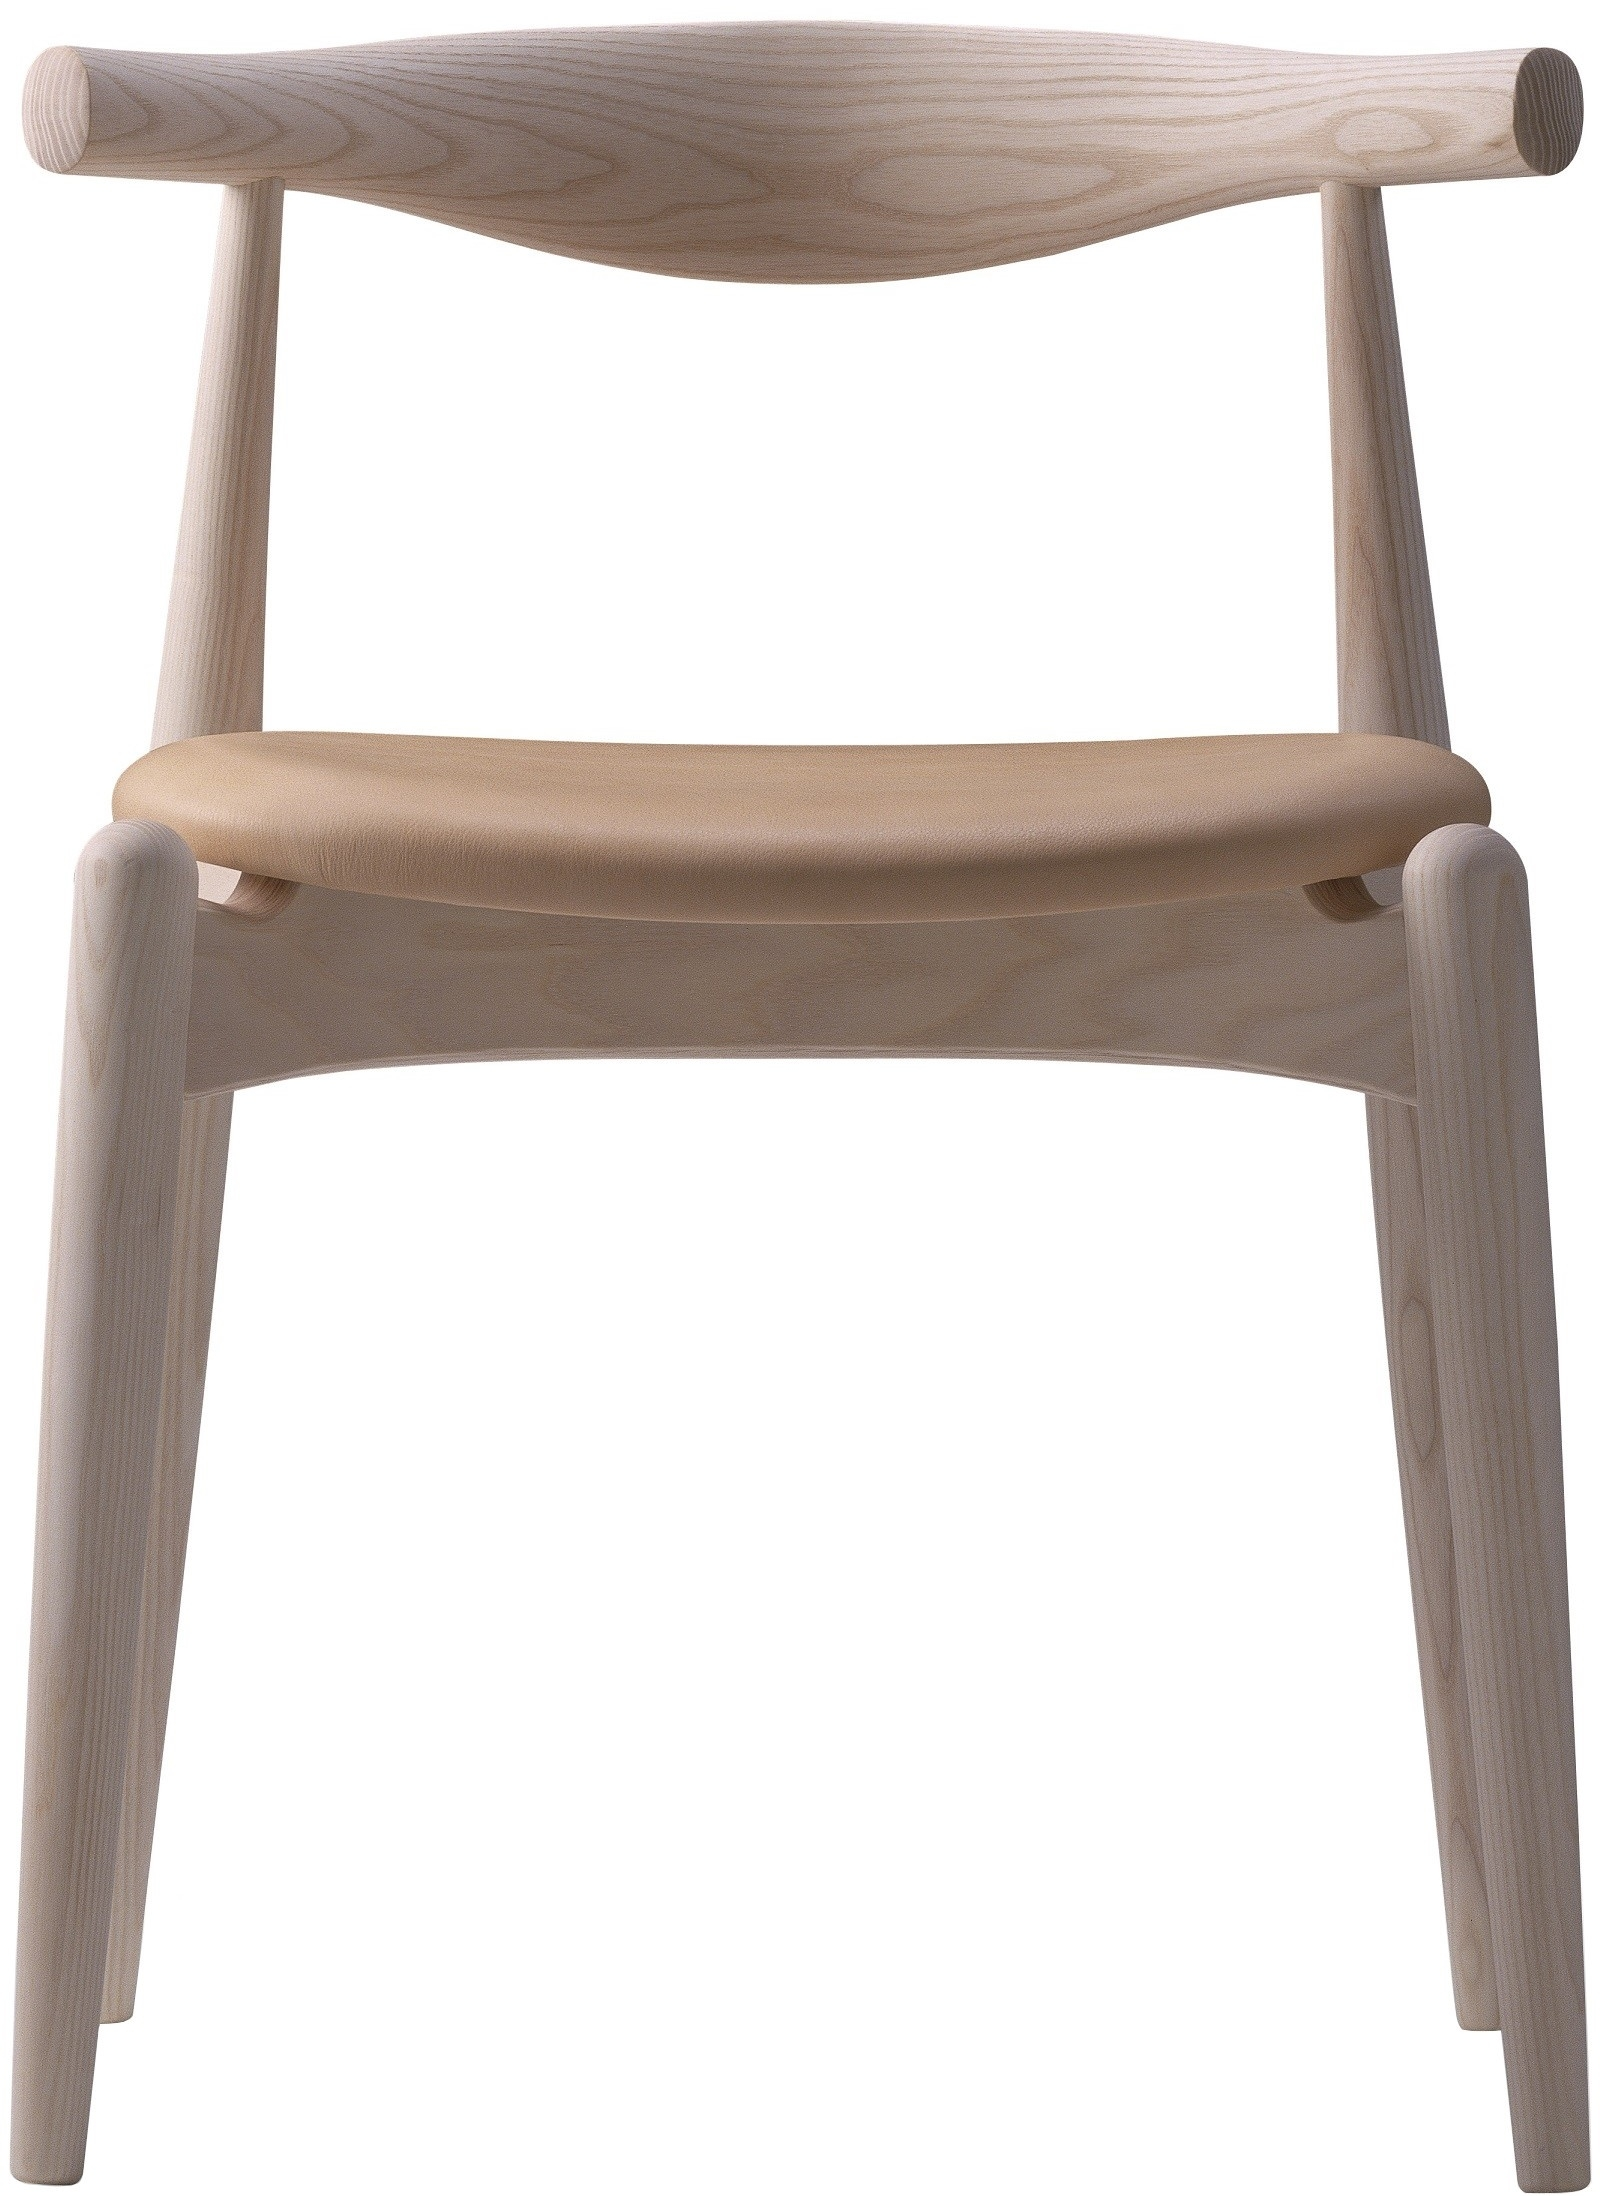 CH20 Elbow Chair Carl Hansen & S¸n Milia Shop